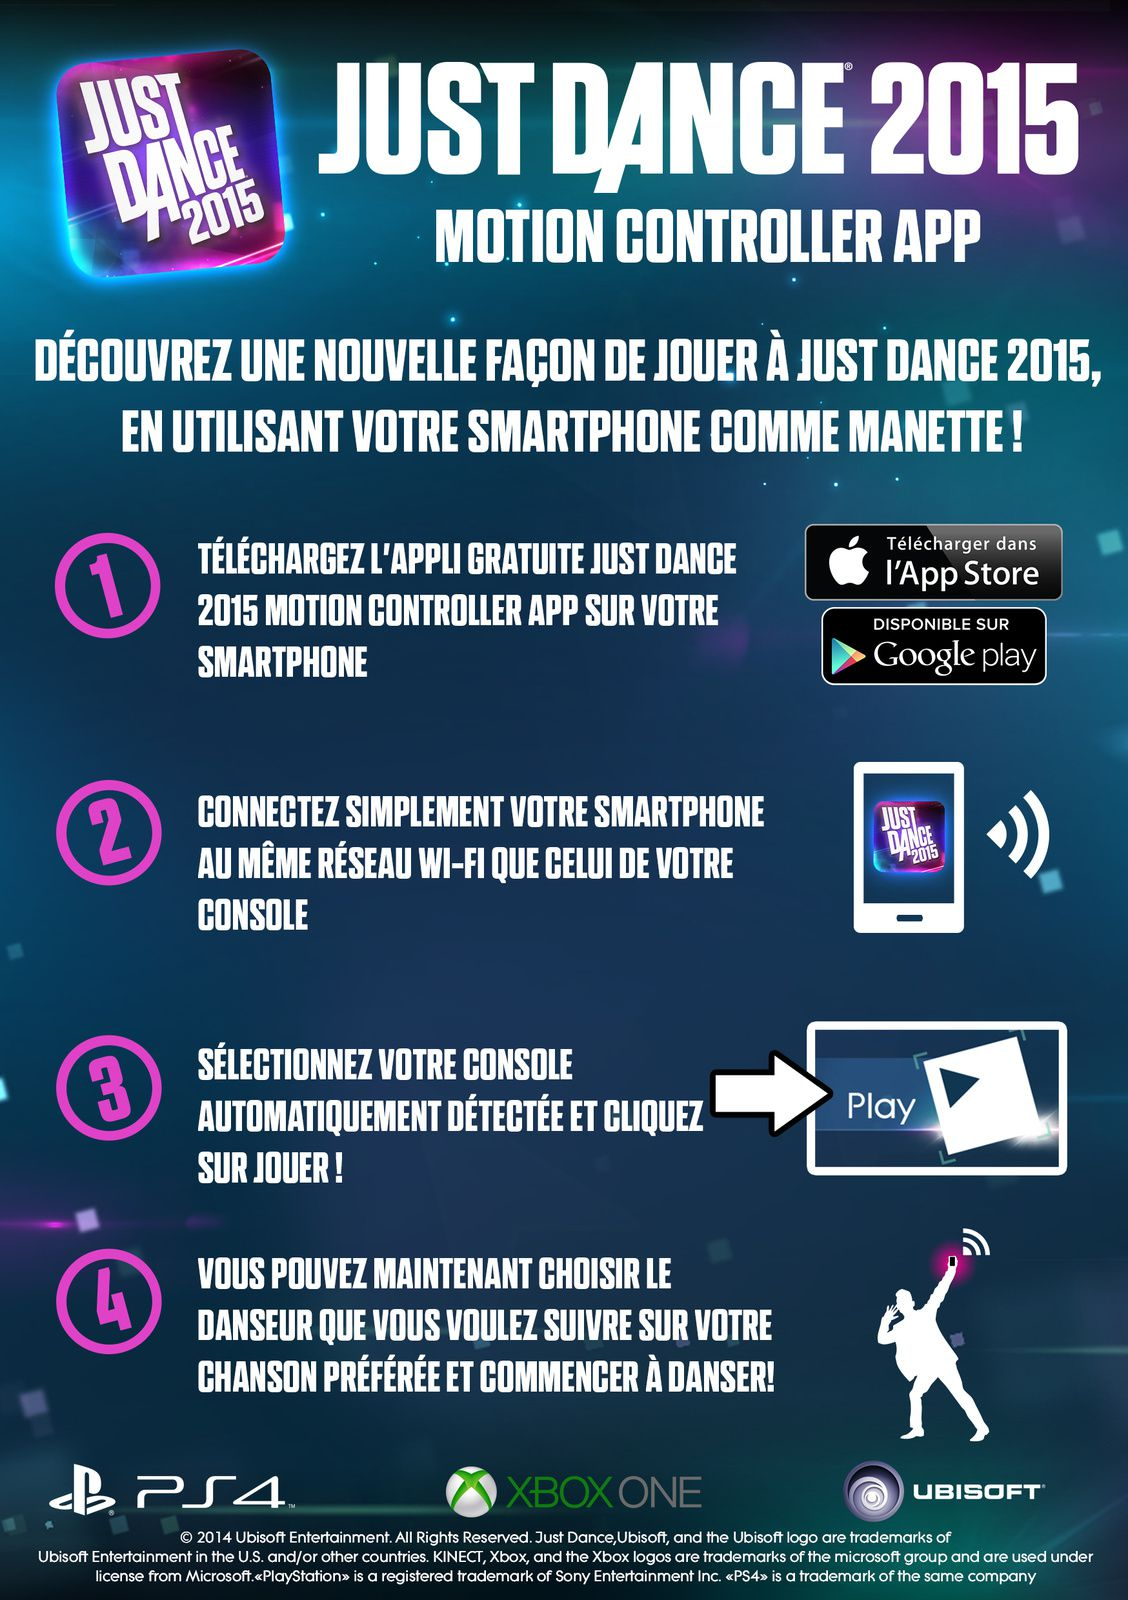 Just Dance 2015 annonce l'application Motion Controller